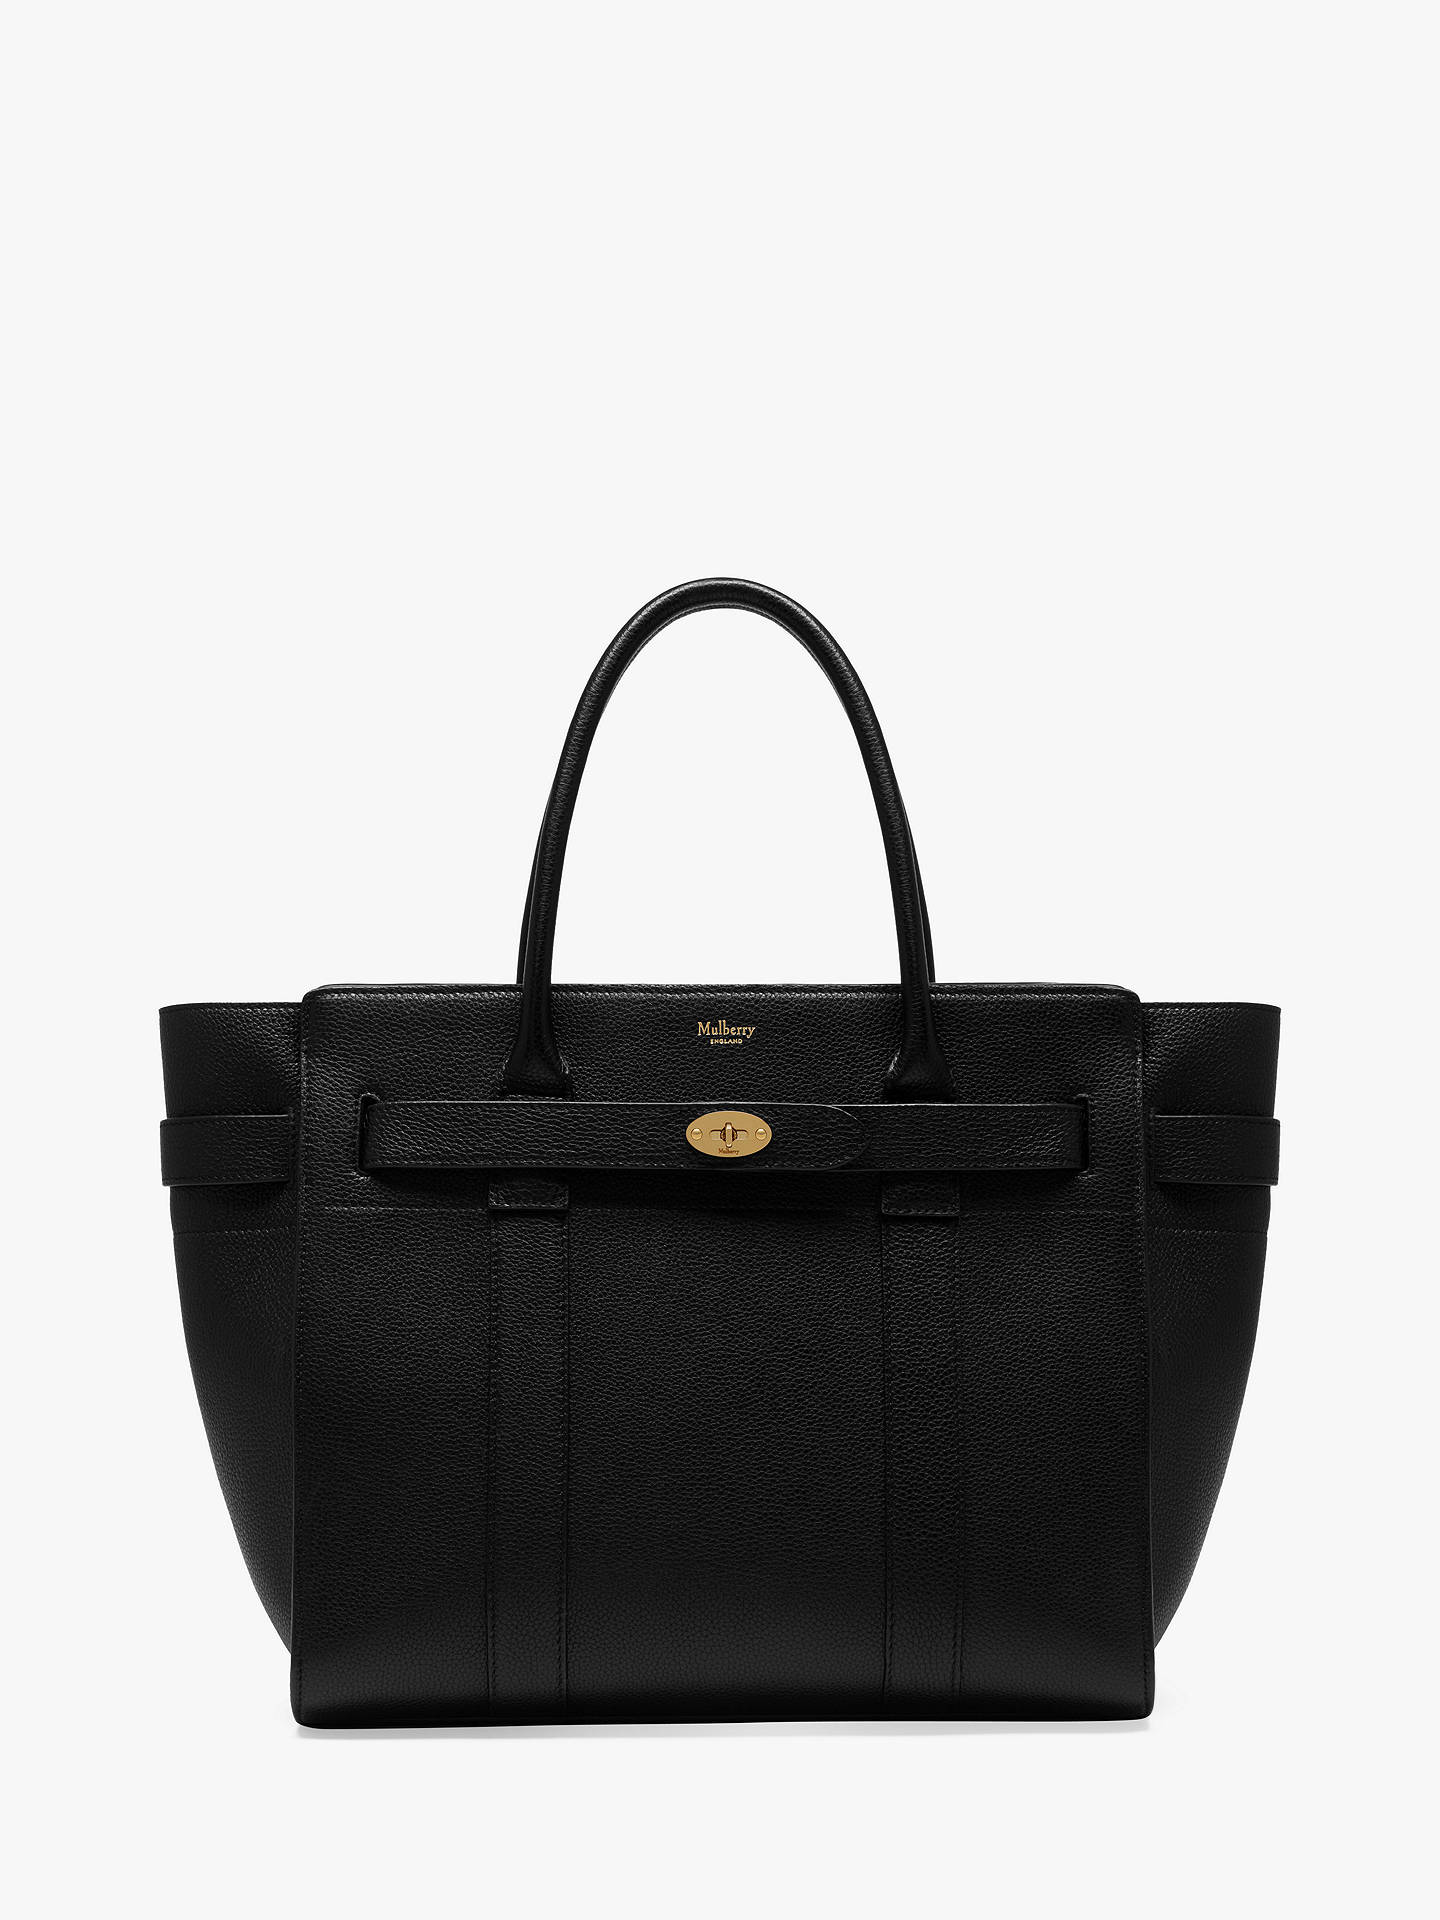 BuyMulberry Bayswater Zipped Small Classic Grain Leather Tote Bag, Black Red  Online at johnlewis ... 06de4824f2